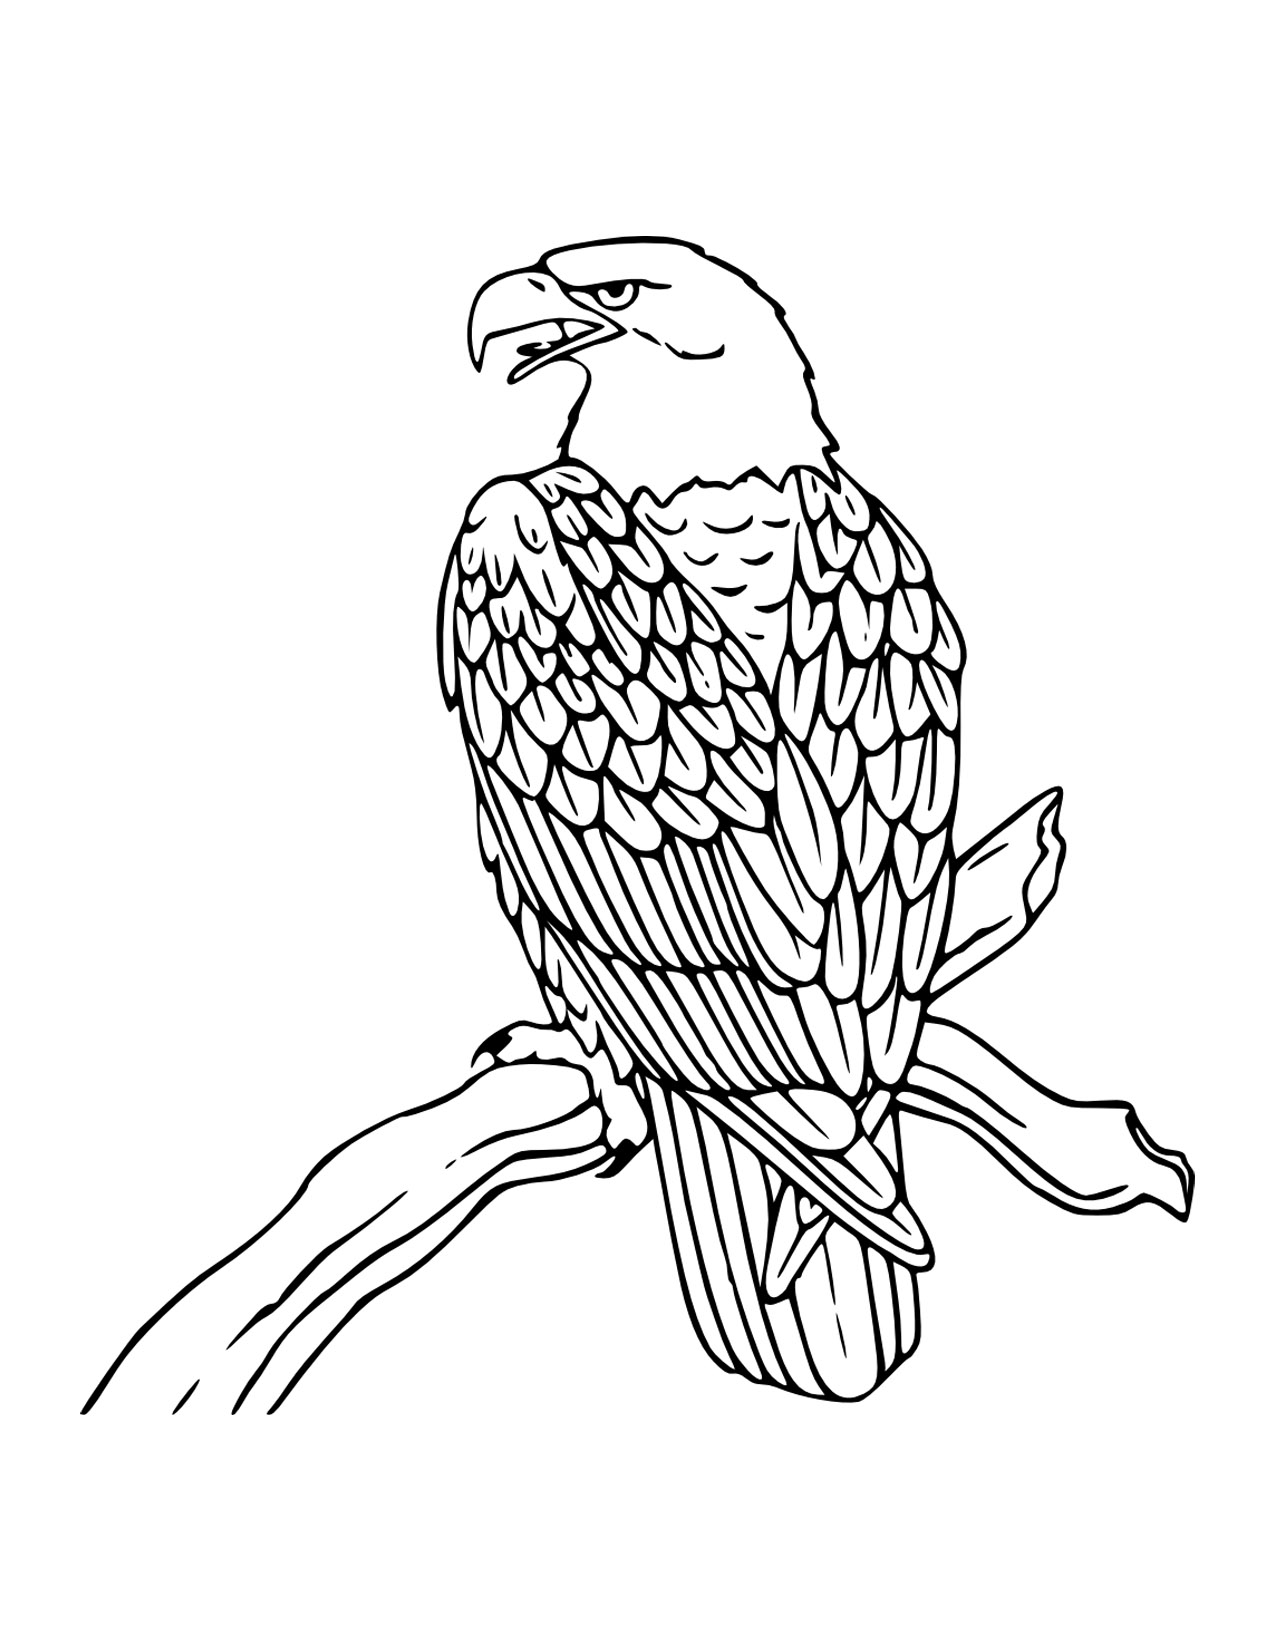 Eagle Coloring Pages Free Printable Bald Eagle Coloring Pages For Kids